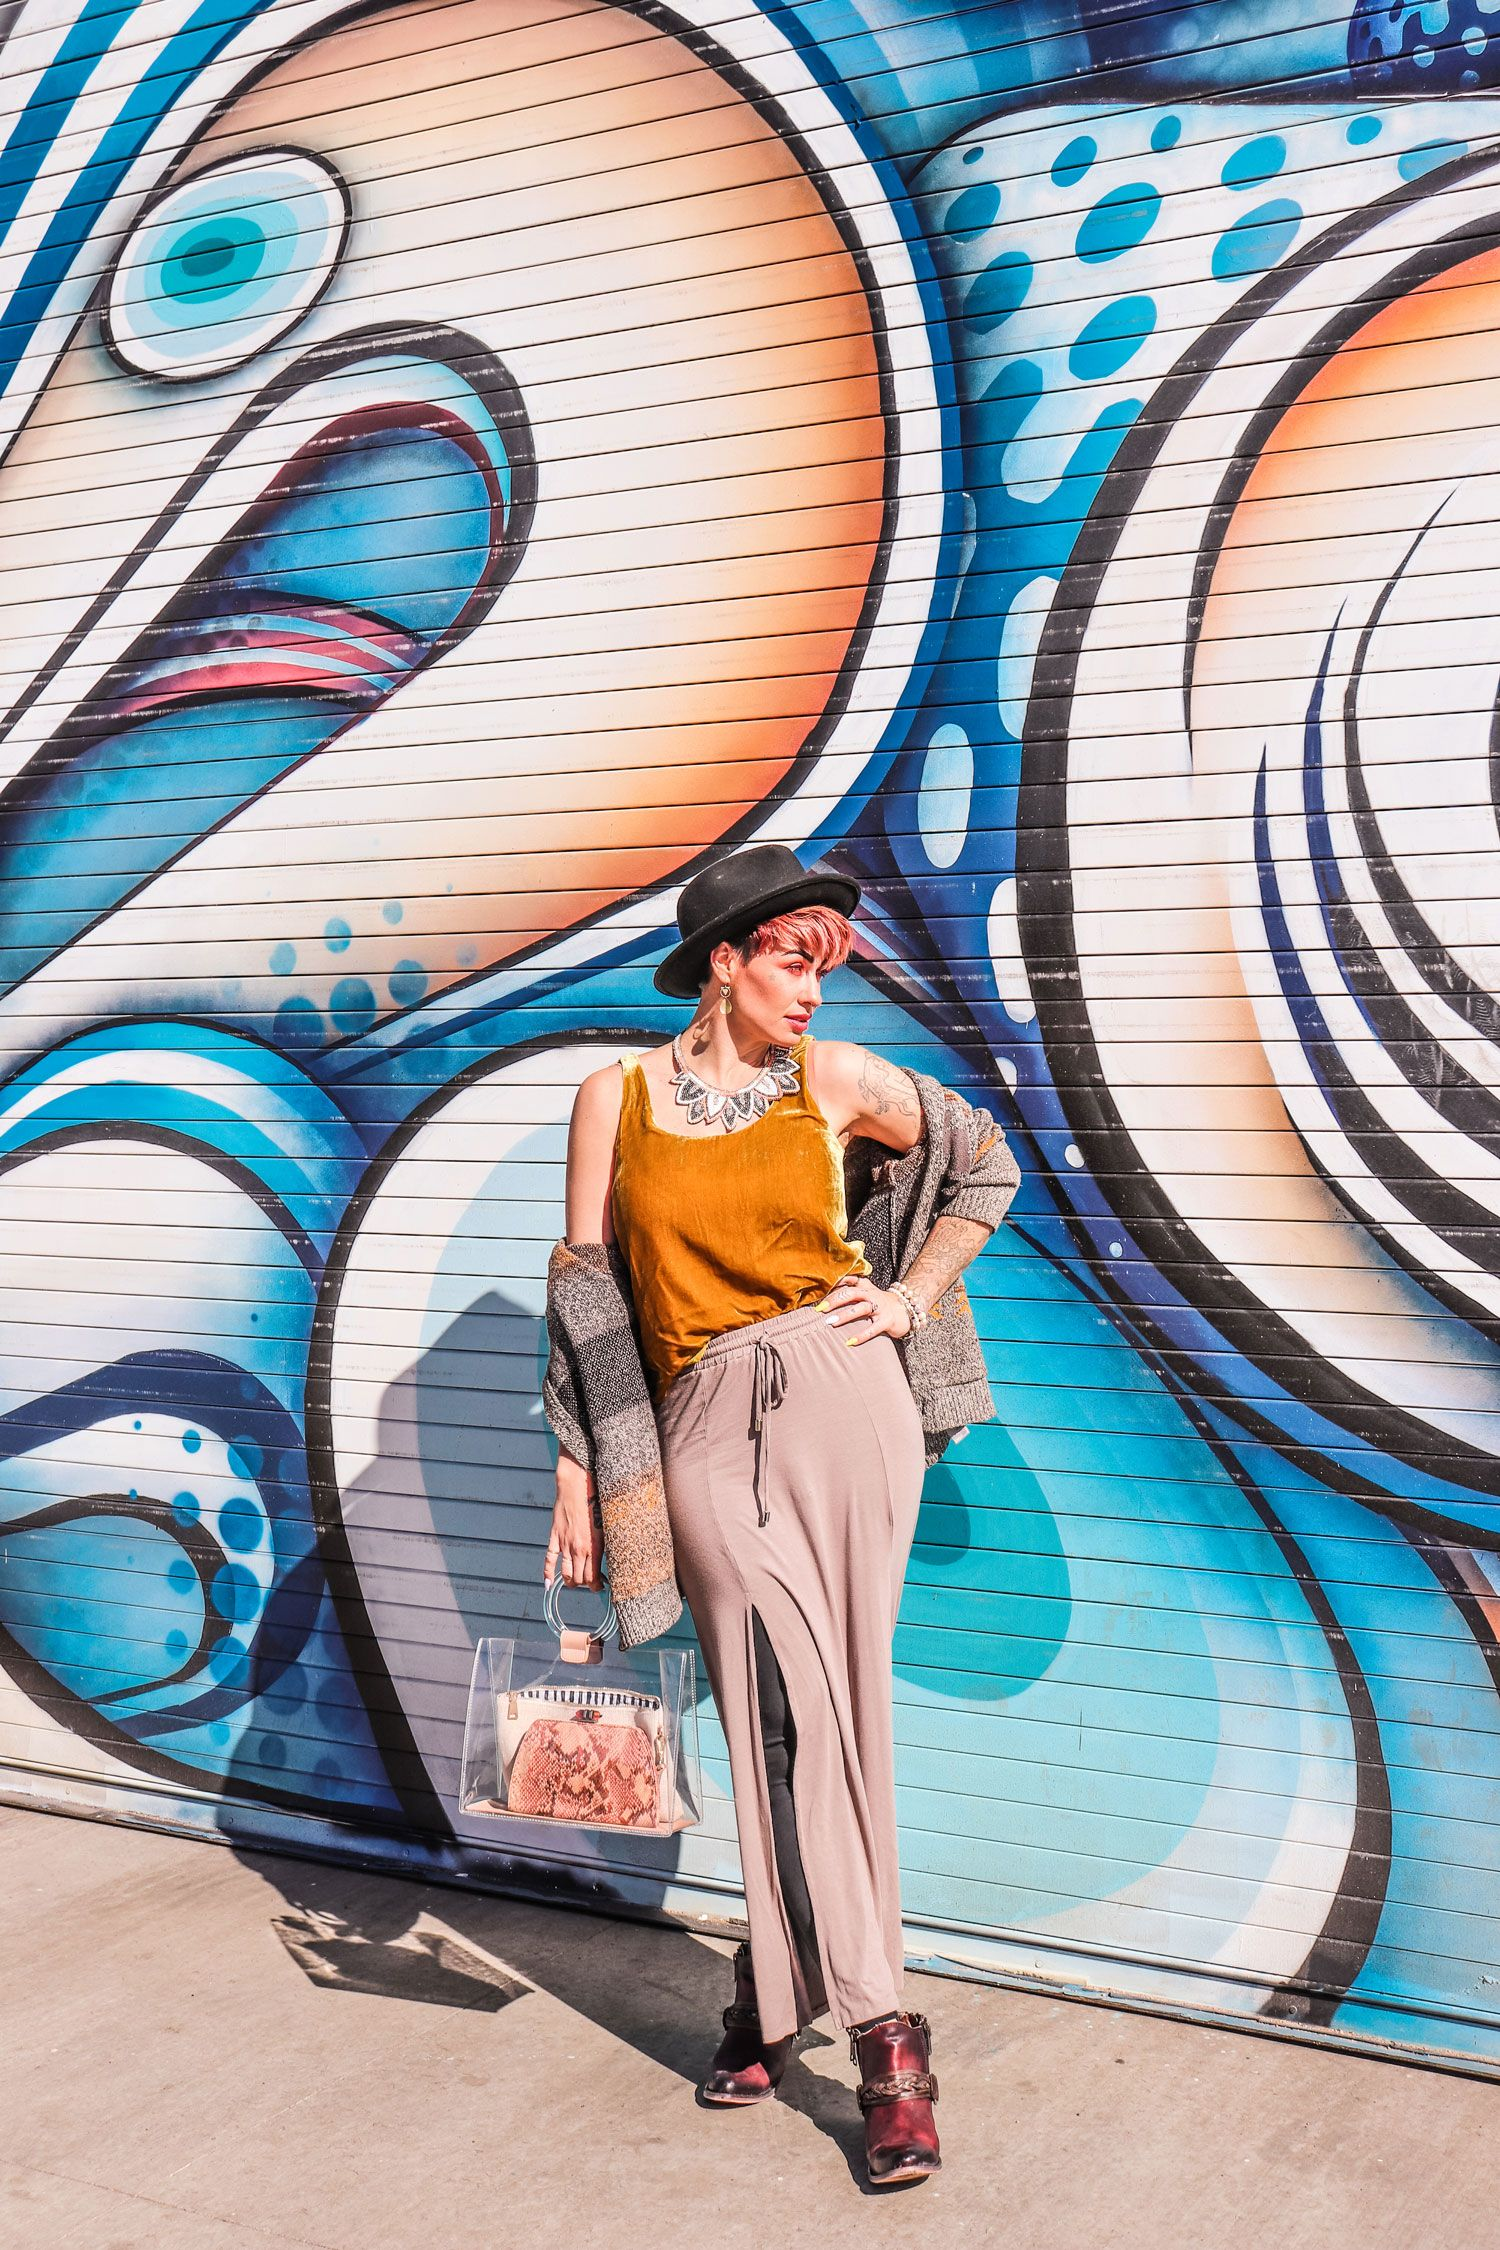 I Ve Got An Exciting New Job Helping Connect The Colorado Fashion Community Colorado Fashion Join Fashion Traditional Fashion